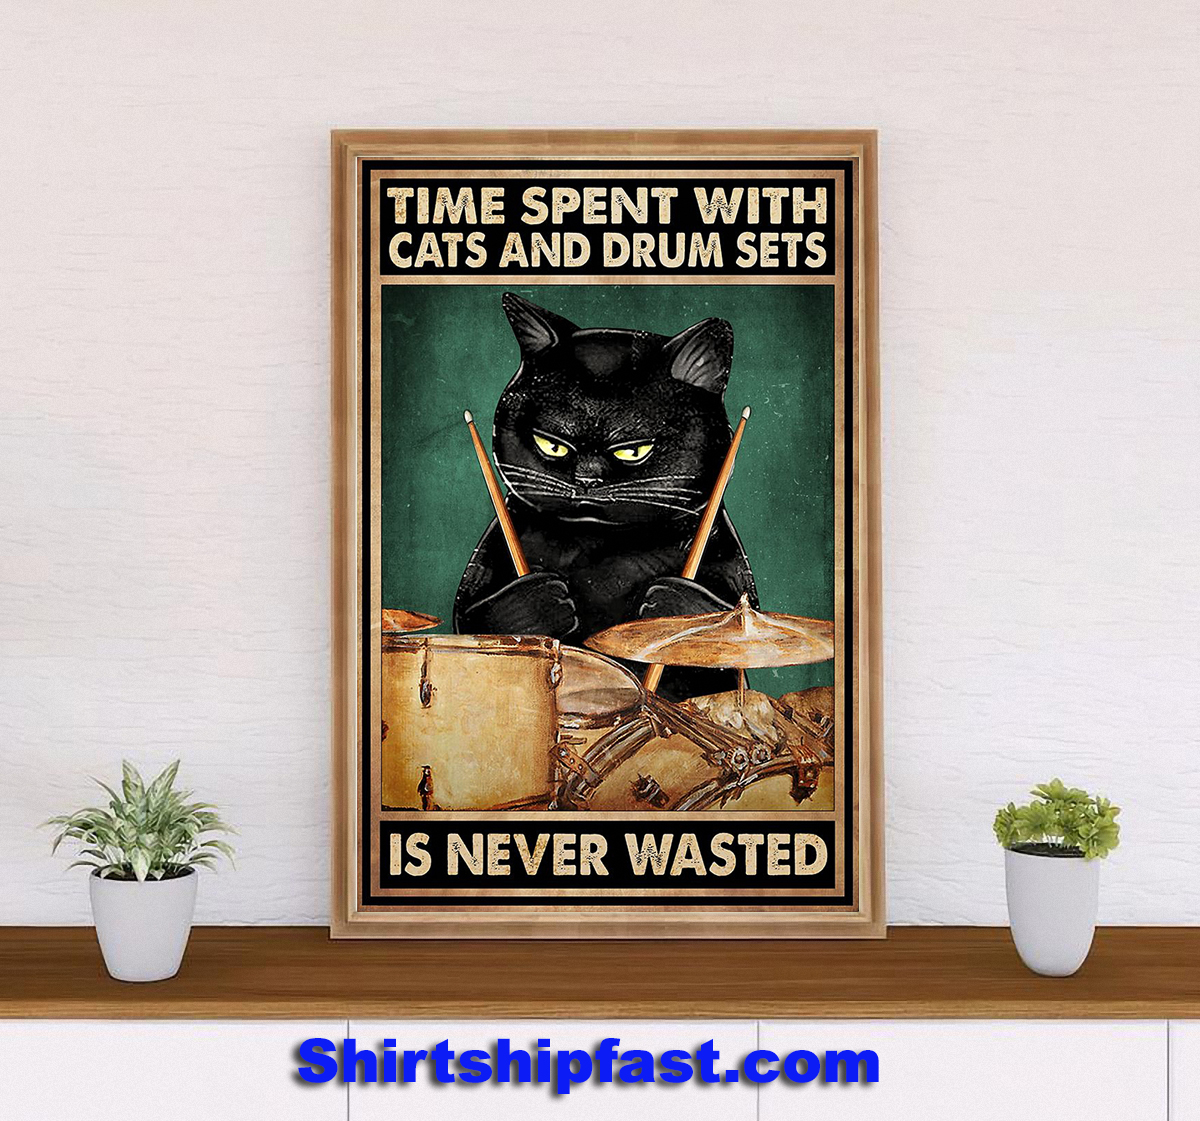 Time spent with cats and drum sets is never wasted poster - Picture 1